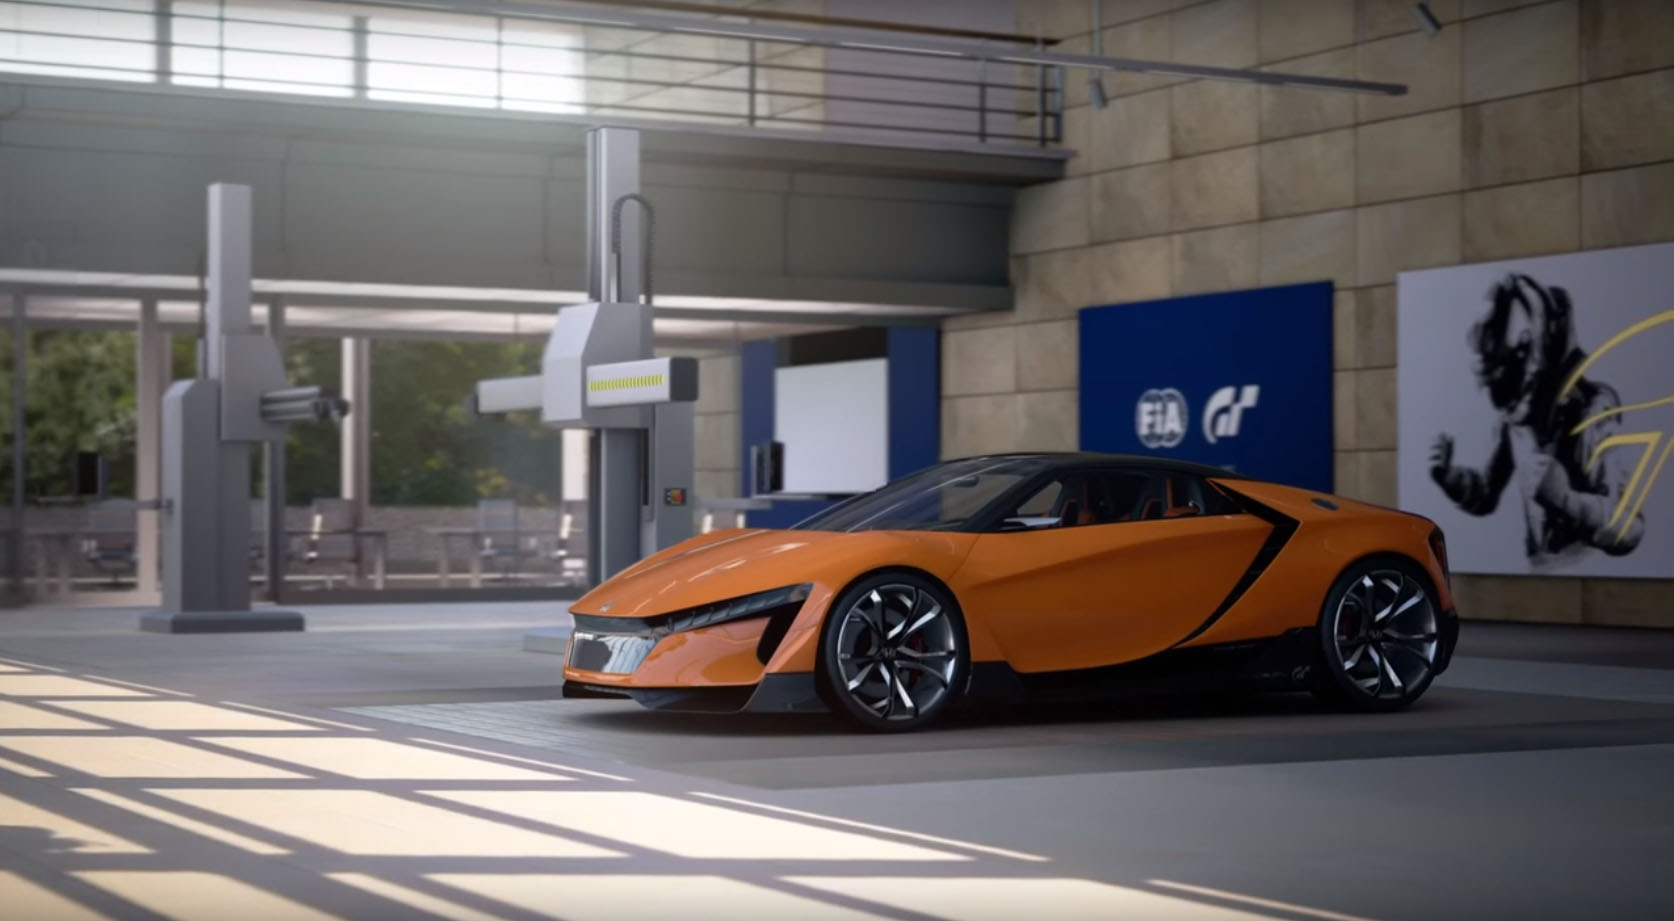 Honda Baby Nsx Coming Soon To The Streets Of Gran Turismo On Ps4